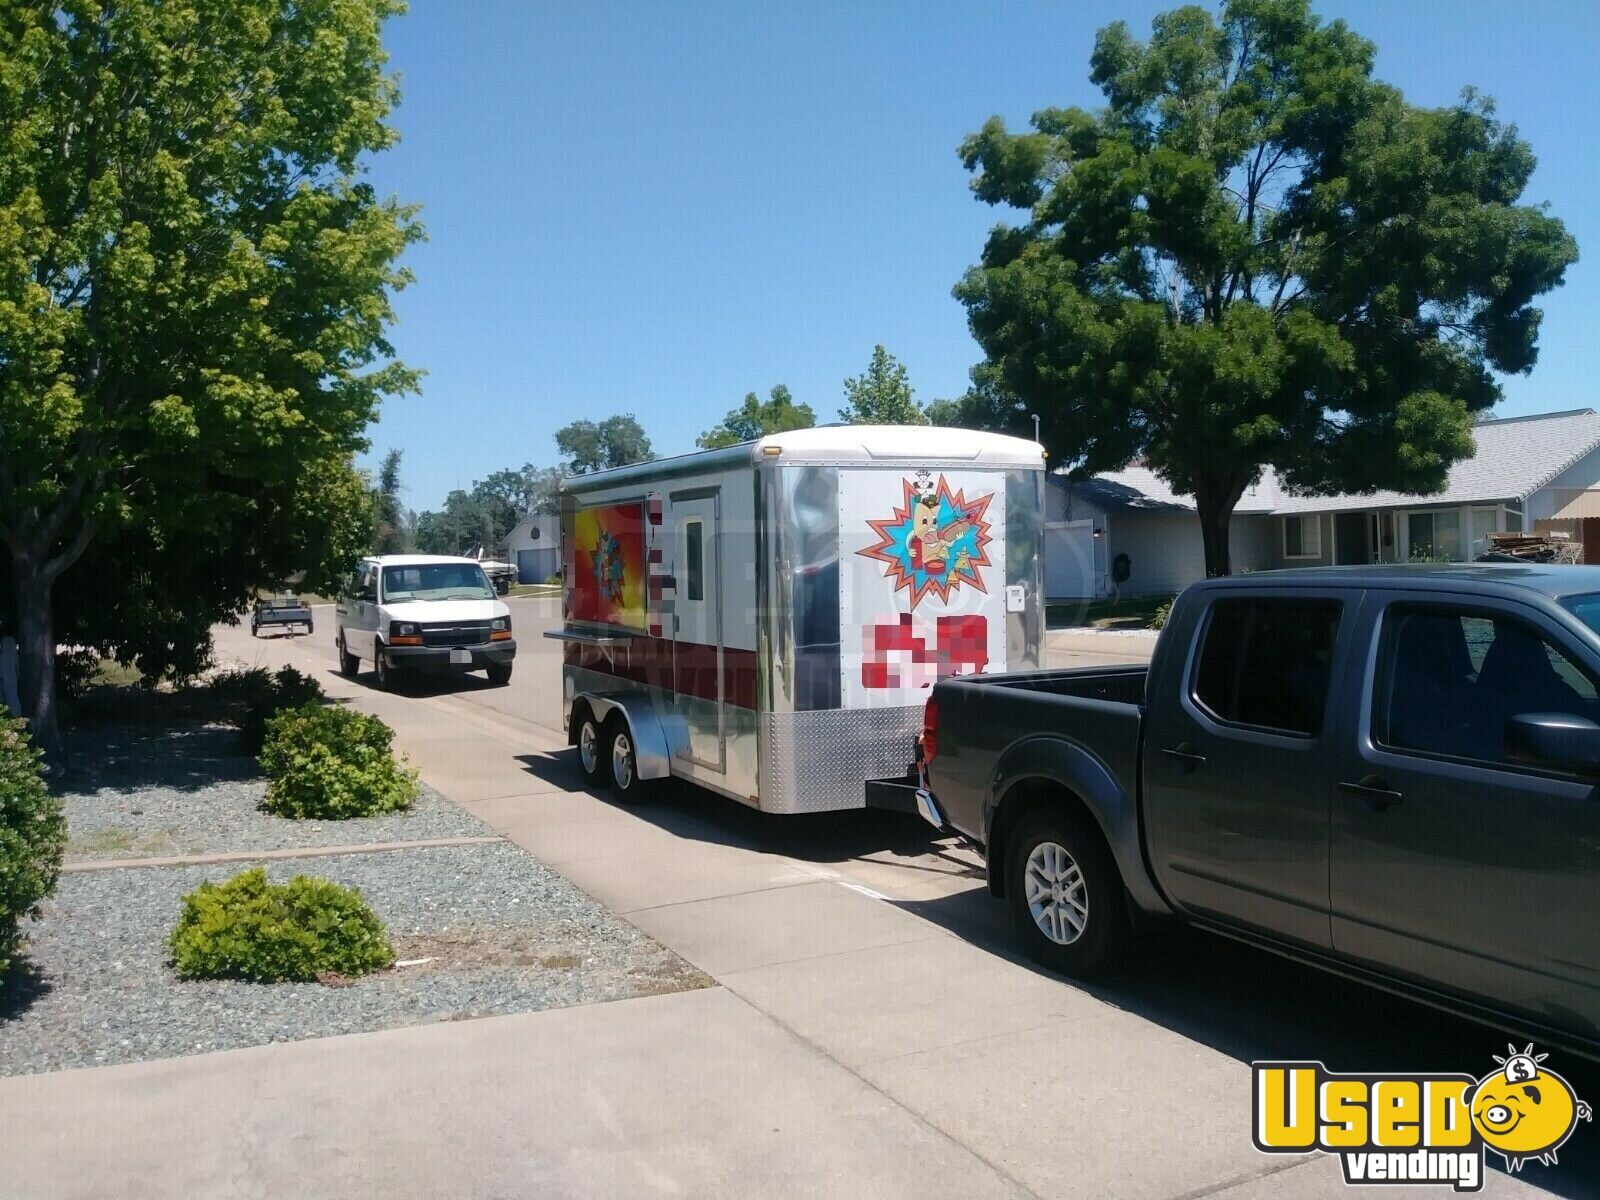 2004 Food Concession Trailer Concession Trailer Upright Freezer California for Sale - 6